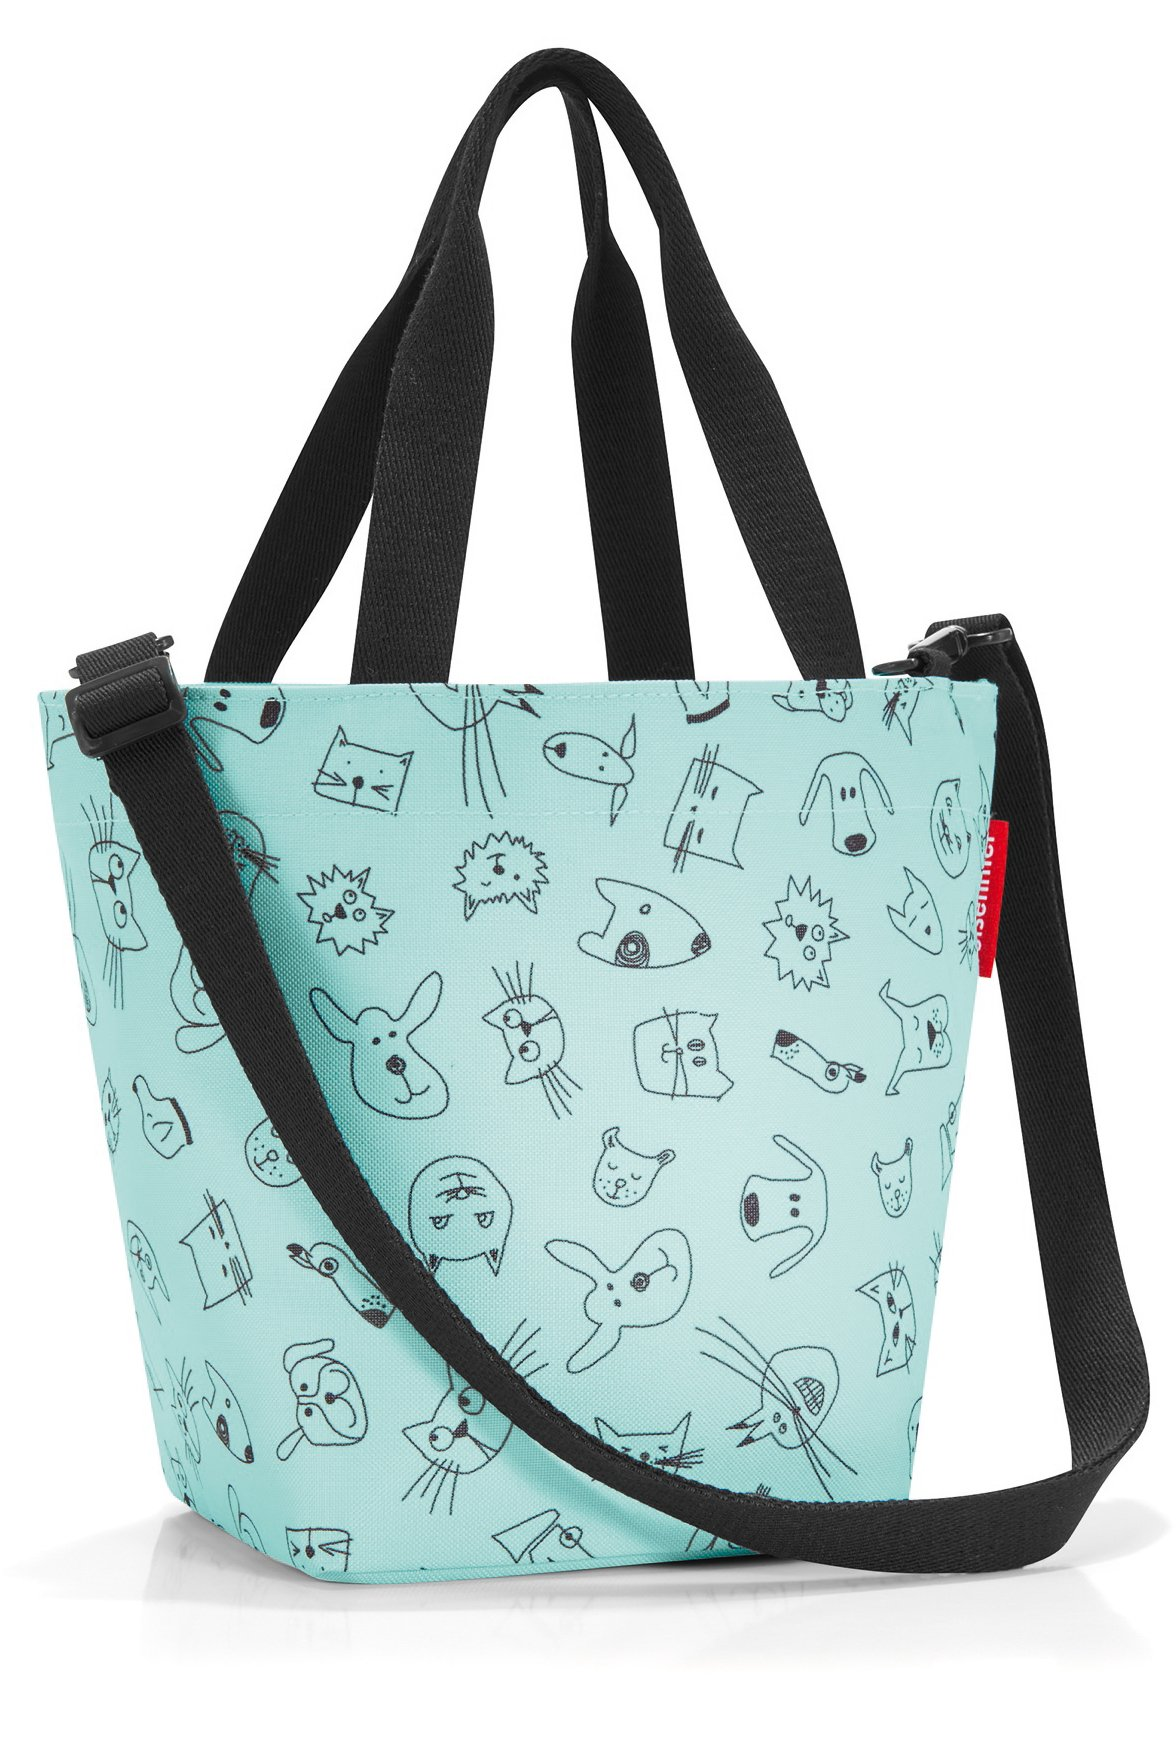 reisenthel Shopper XS, Extra Small Zippered Tote Bag with Shoulder Strap, Cats and Dogs Mint